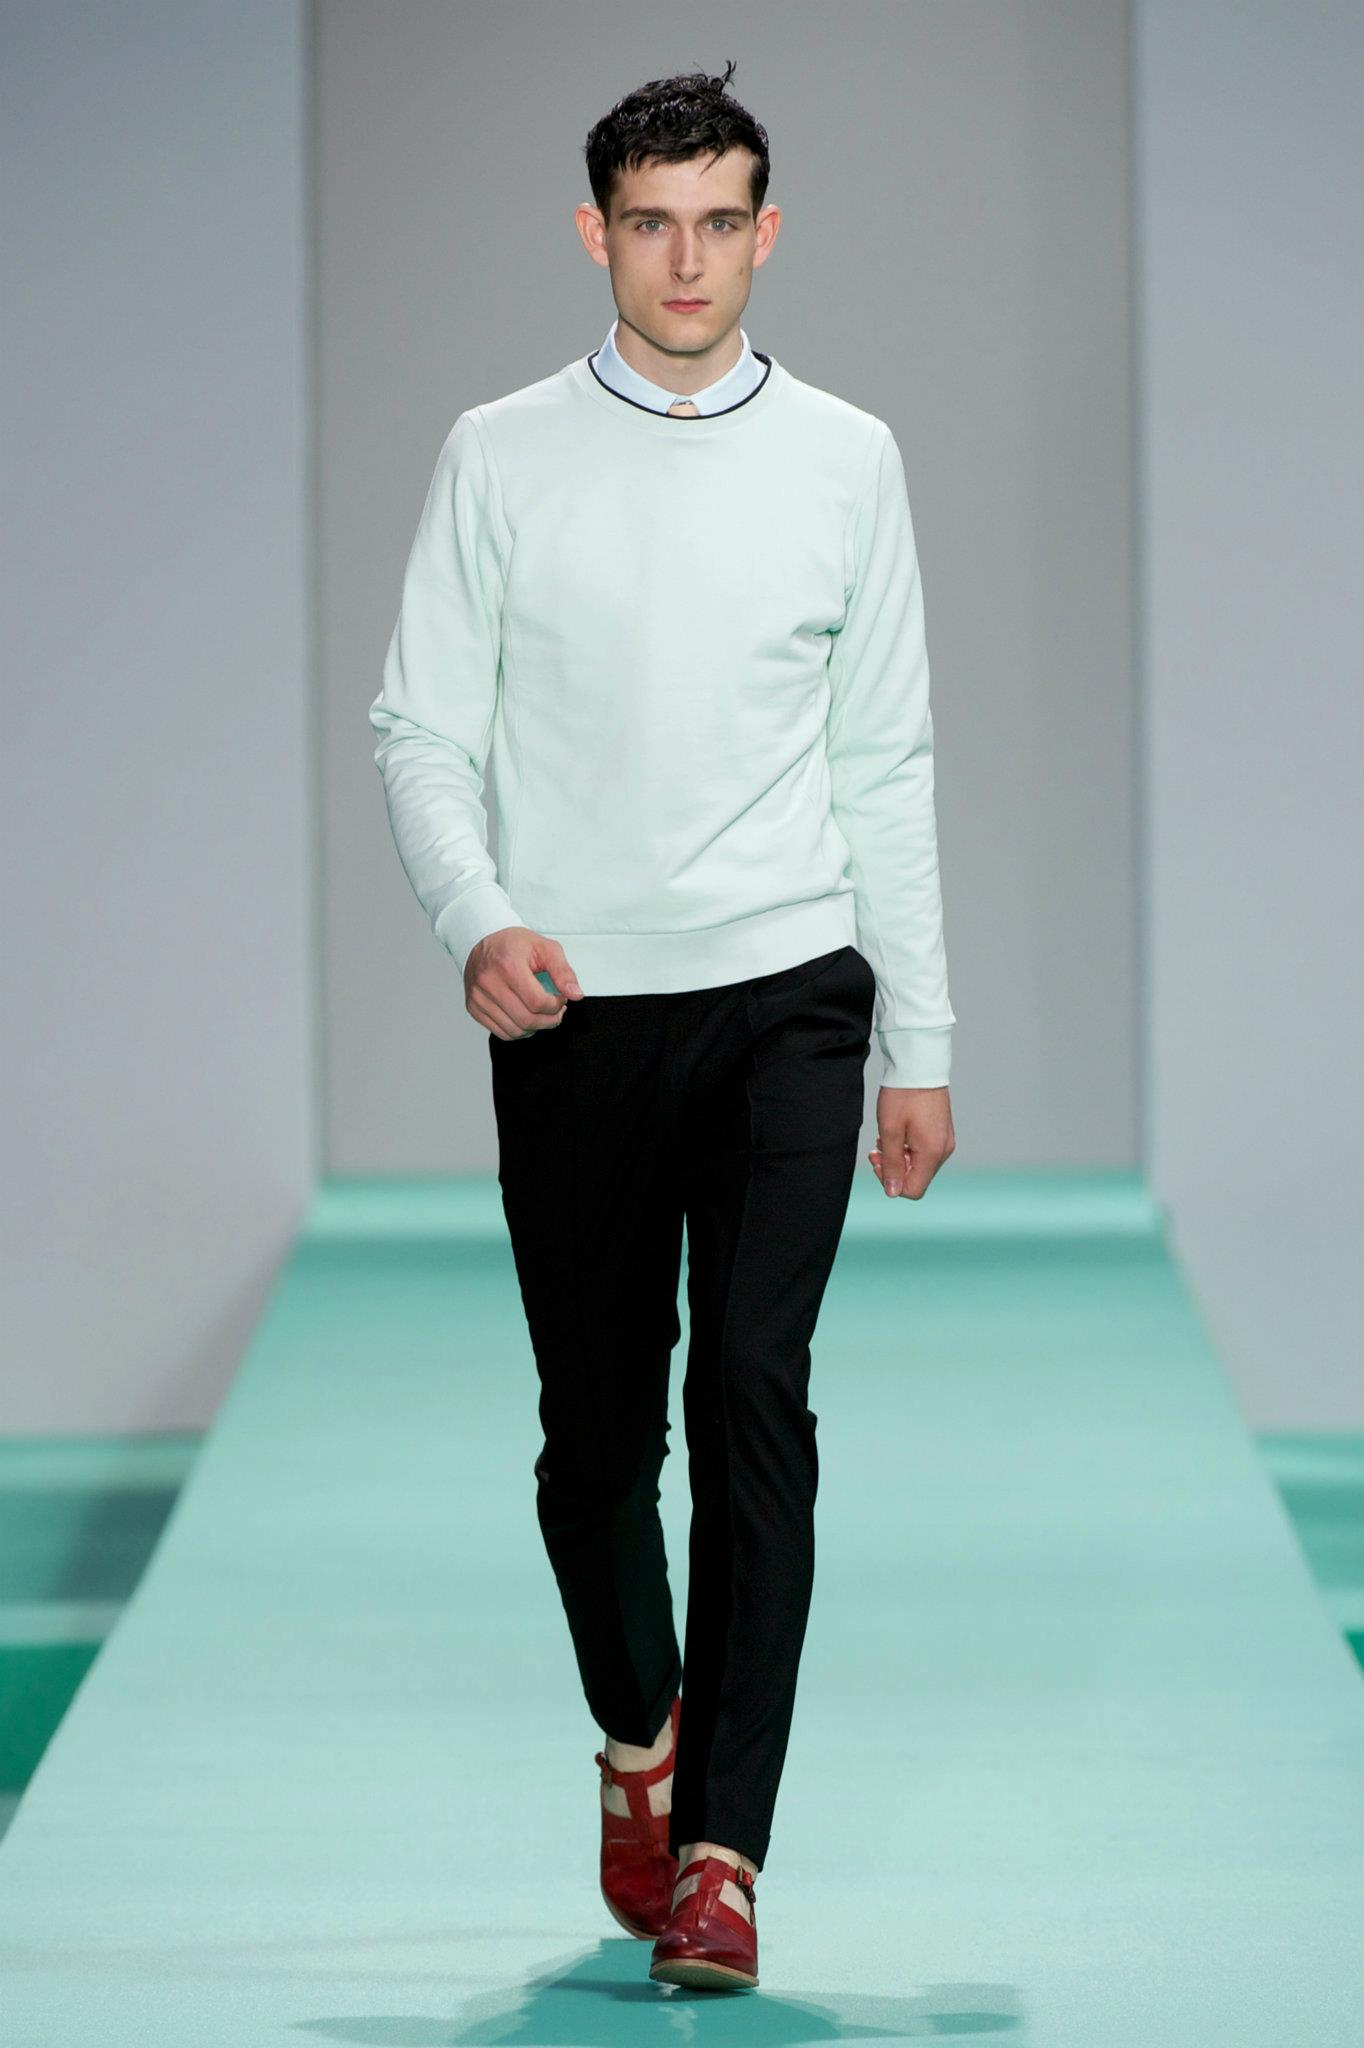 Paul Smith Spring Summer 2013 Menswear Collection